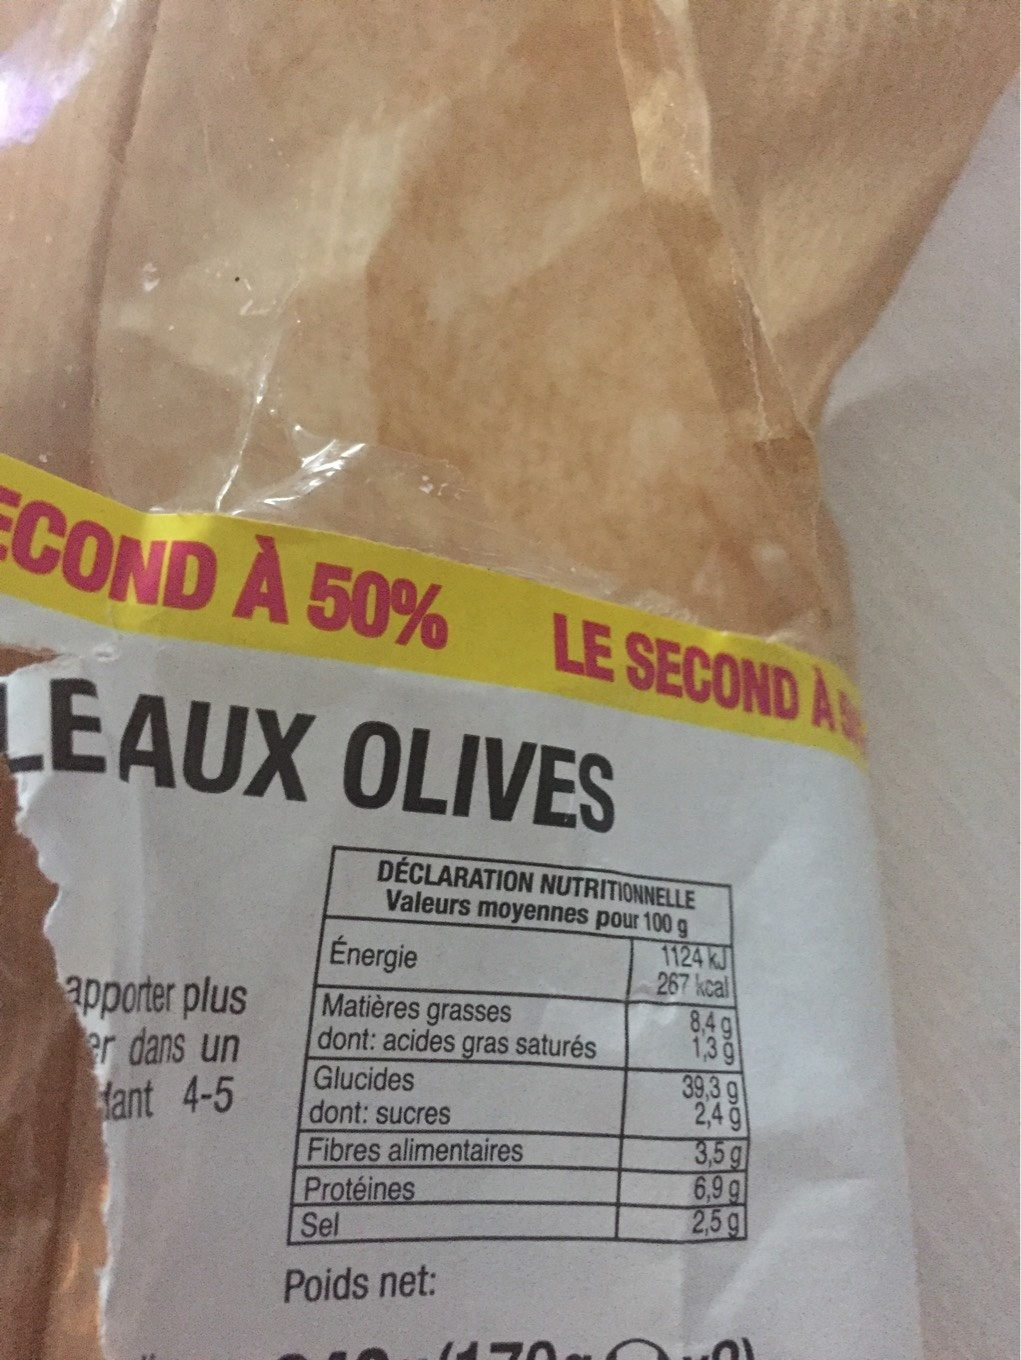 Foucaccia aux olives - Nutrition facts